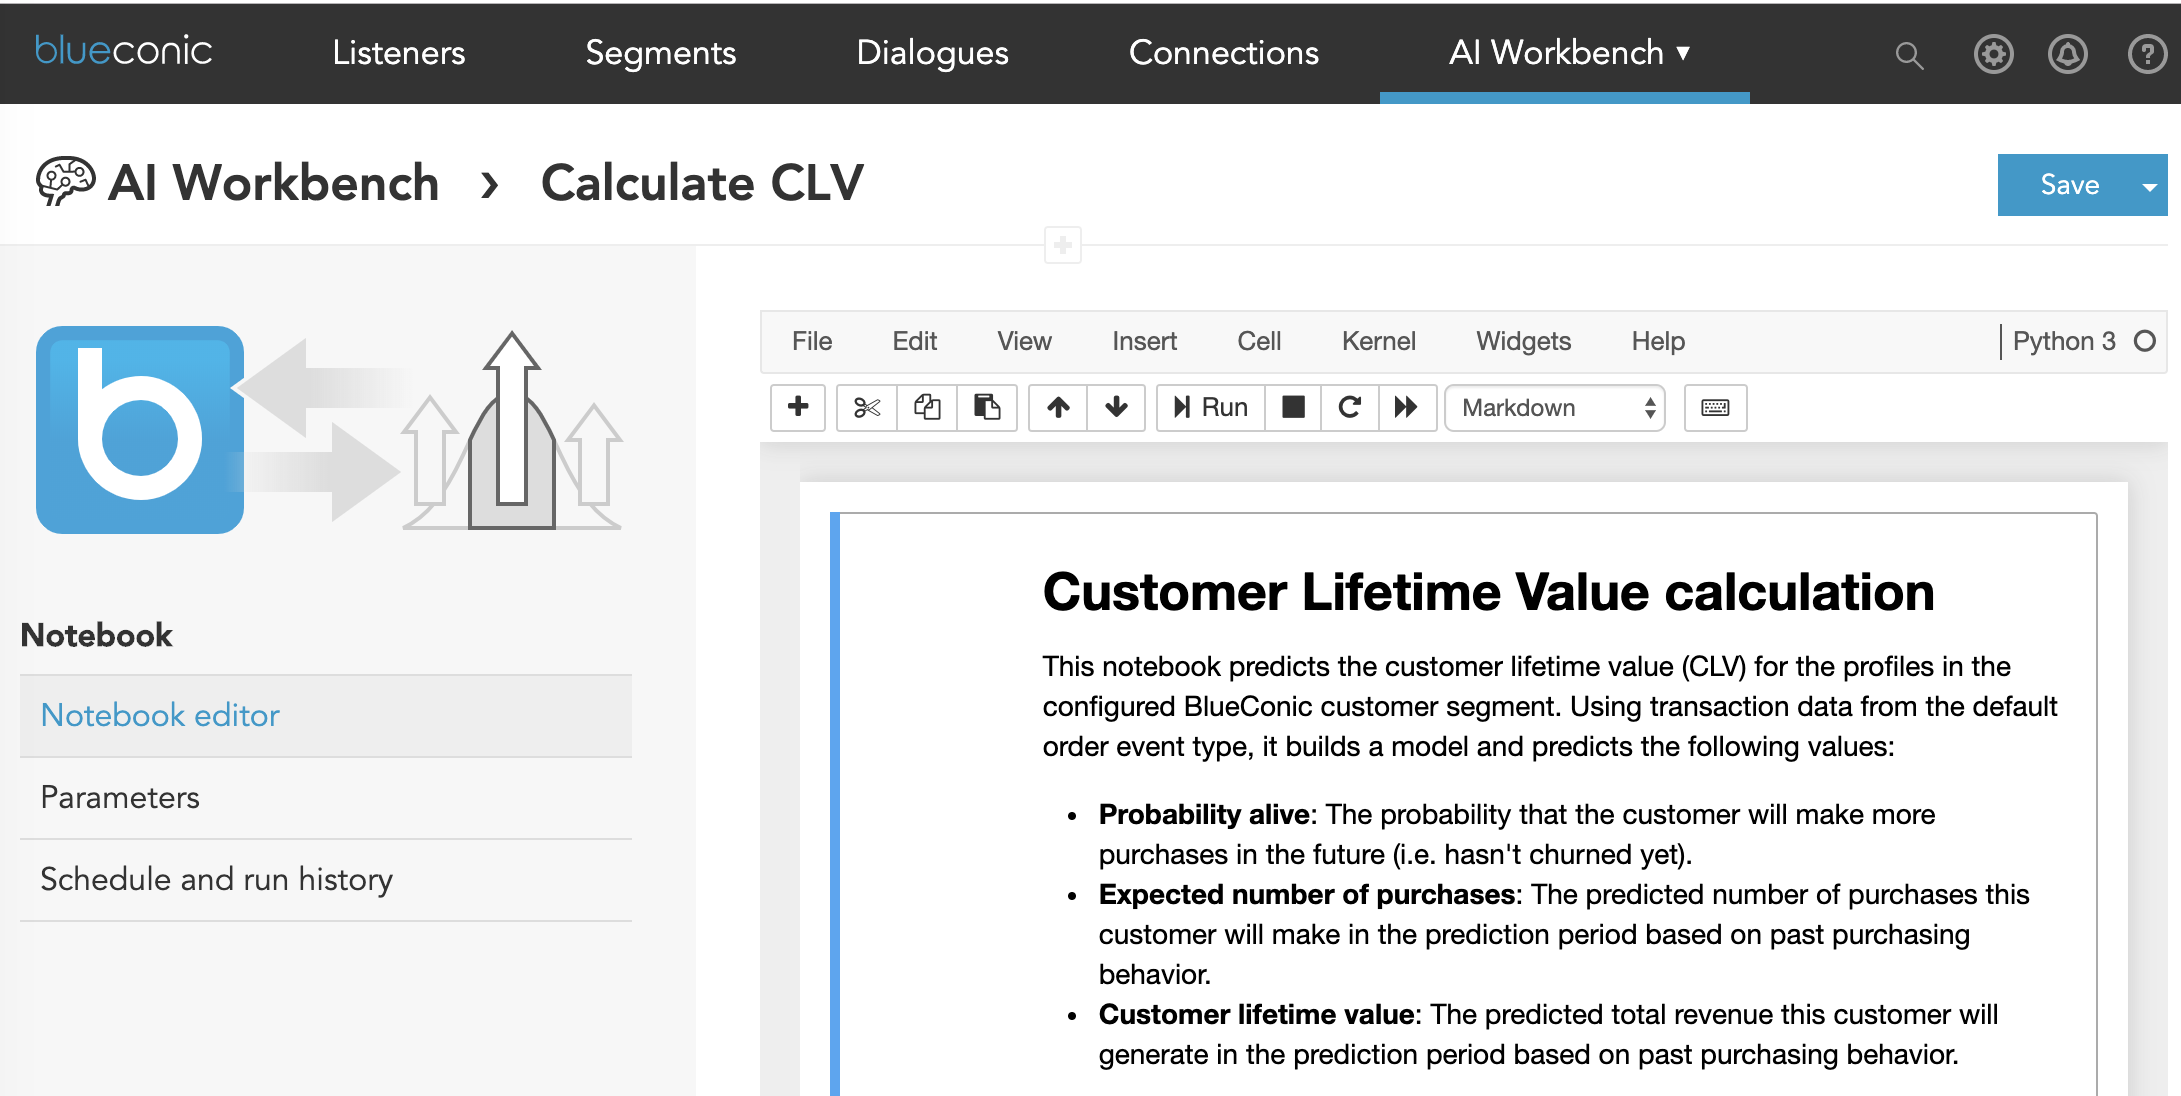 How to calculate CLV using AI models, AI marketing, machine learning, and predictive analytics for marketing with customer data and customer segments in the BlueConic CDP